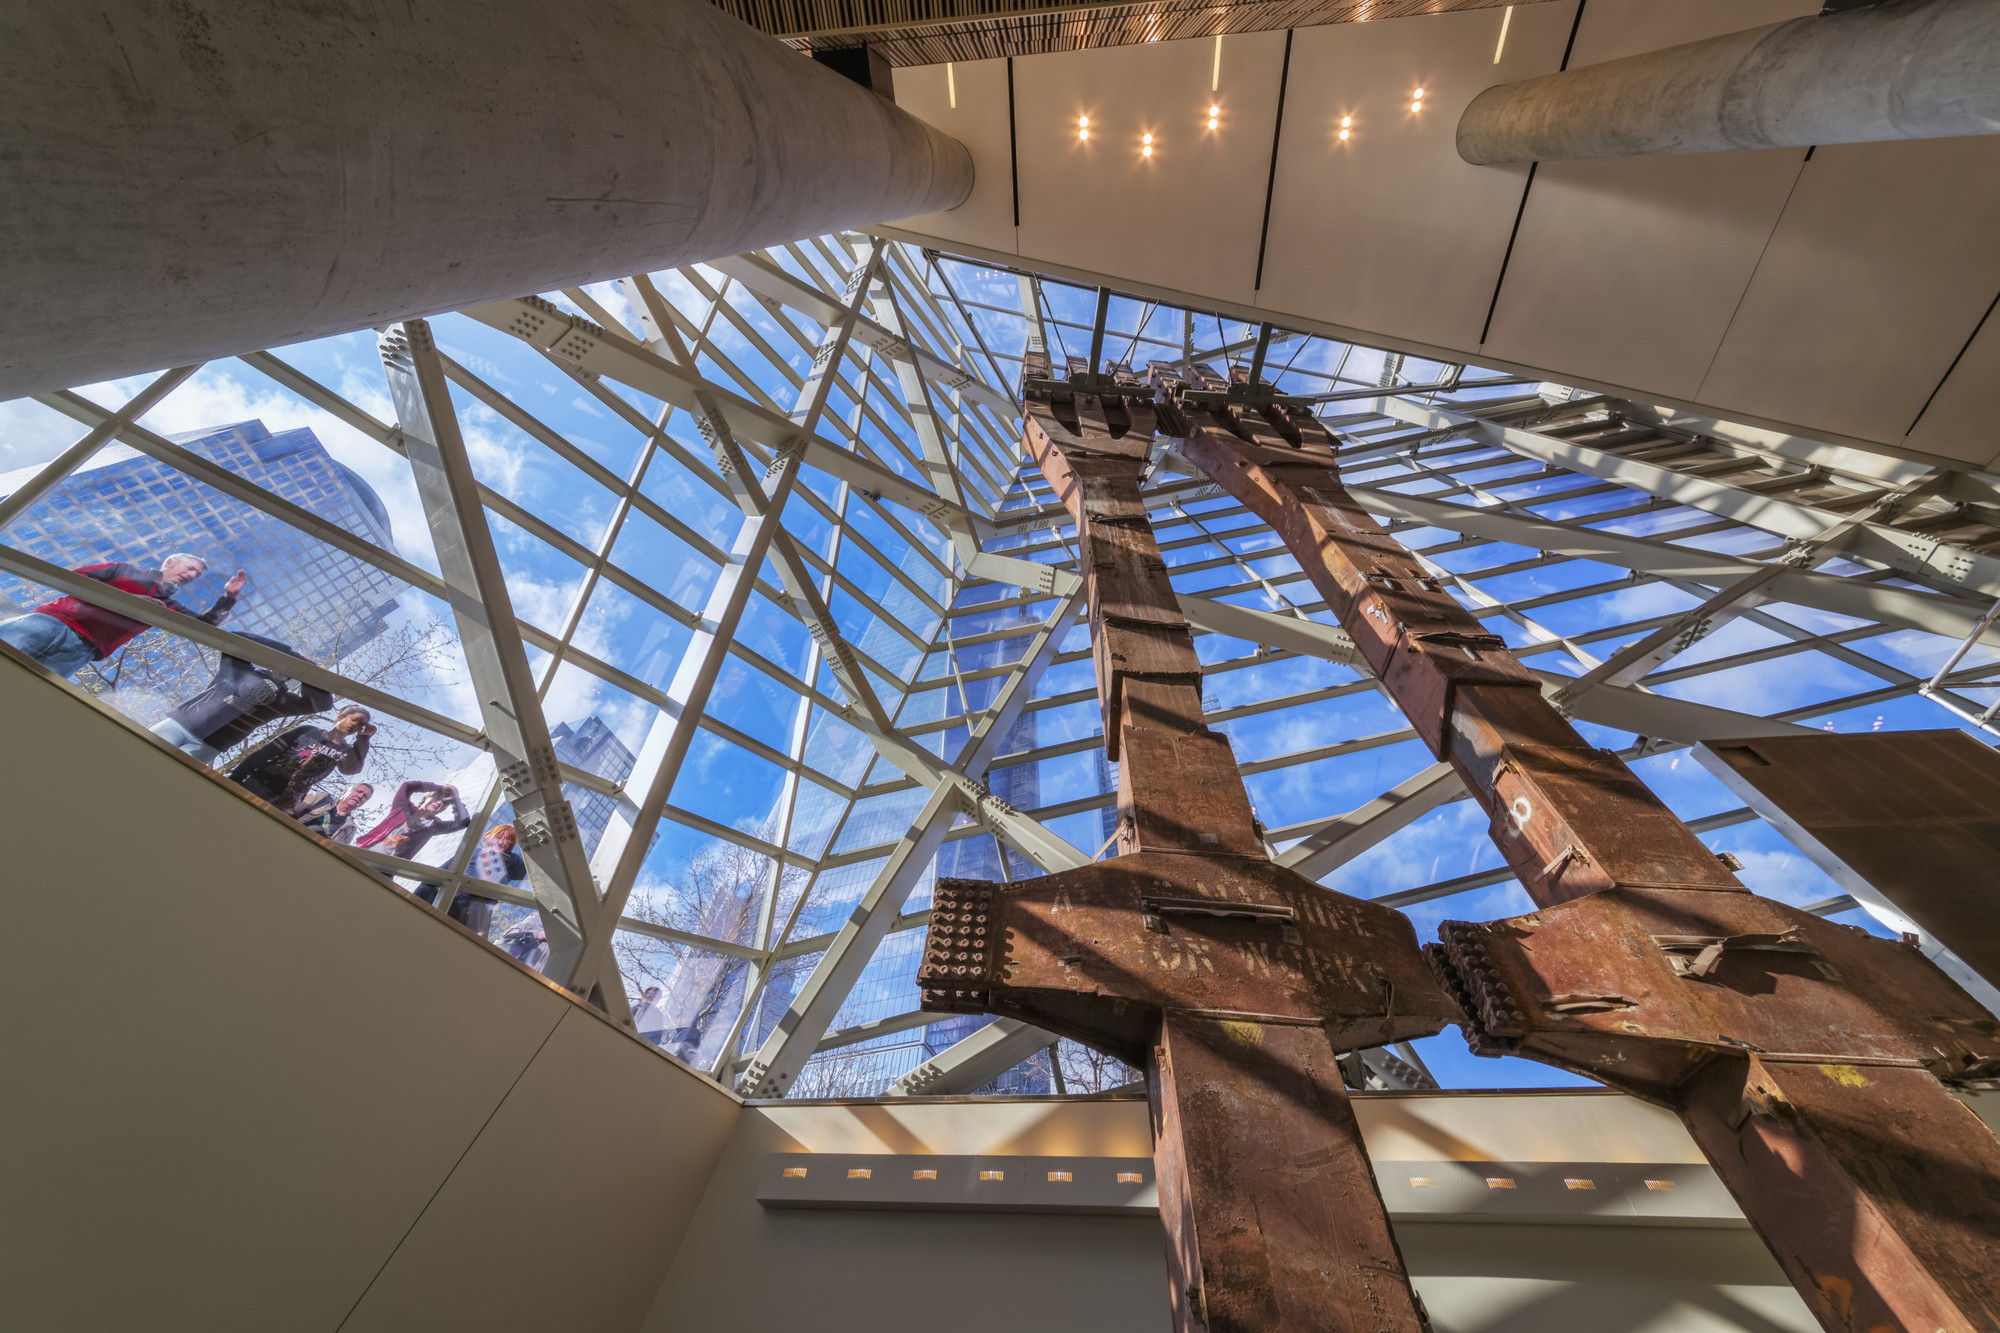 Critical Round-Up: The September 11 Memorial Museum, Two salvaged columns from the towers, placed inside Snøhetta's entrance building. Image © Jeff Goldberg / ESTO